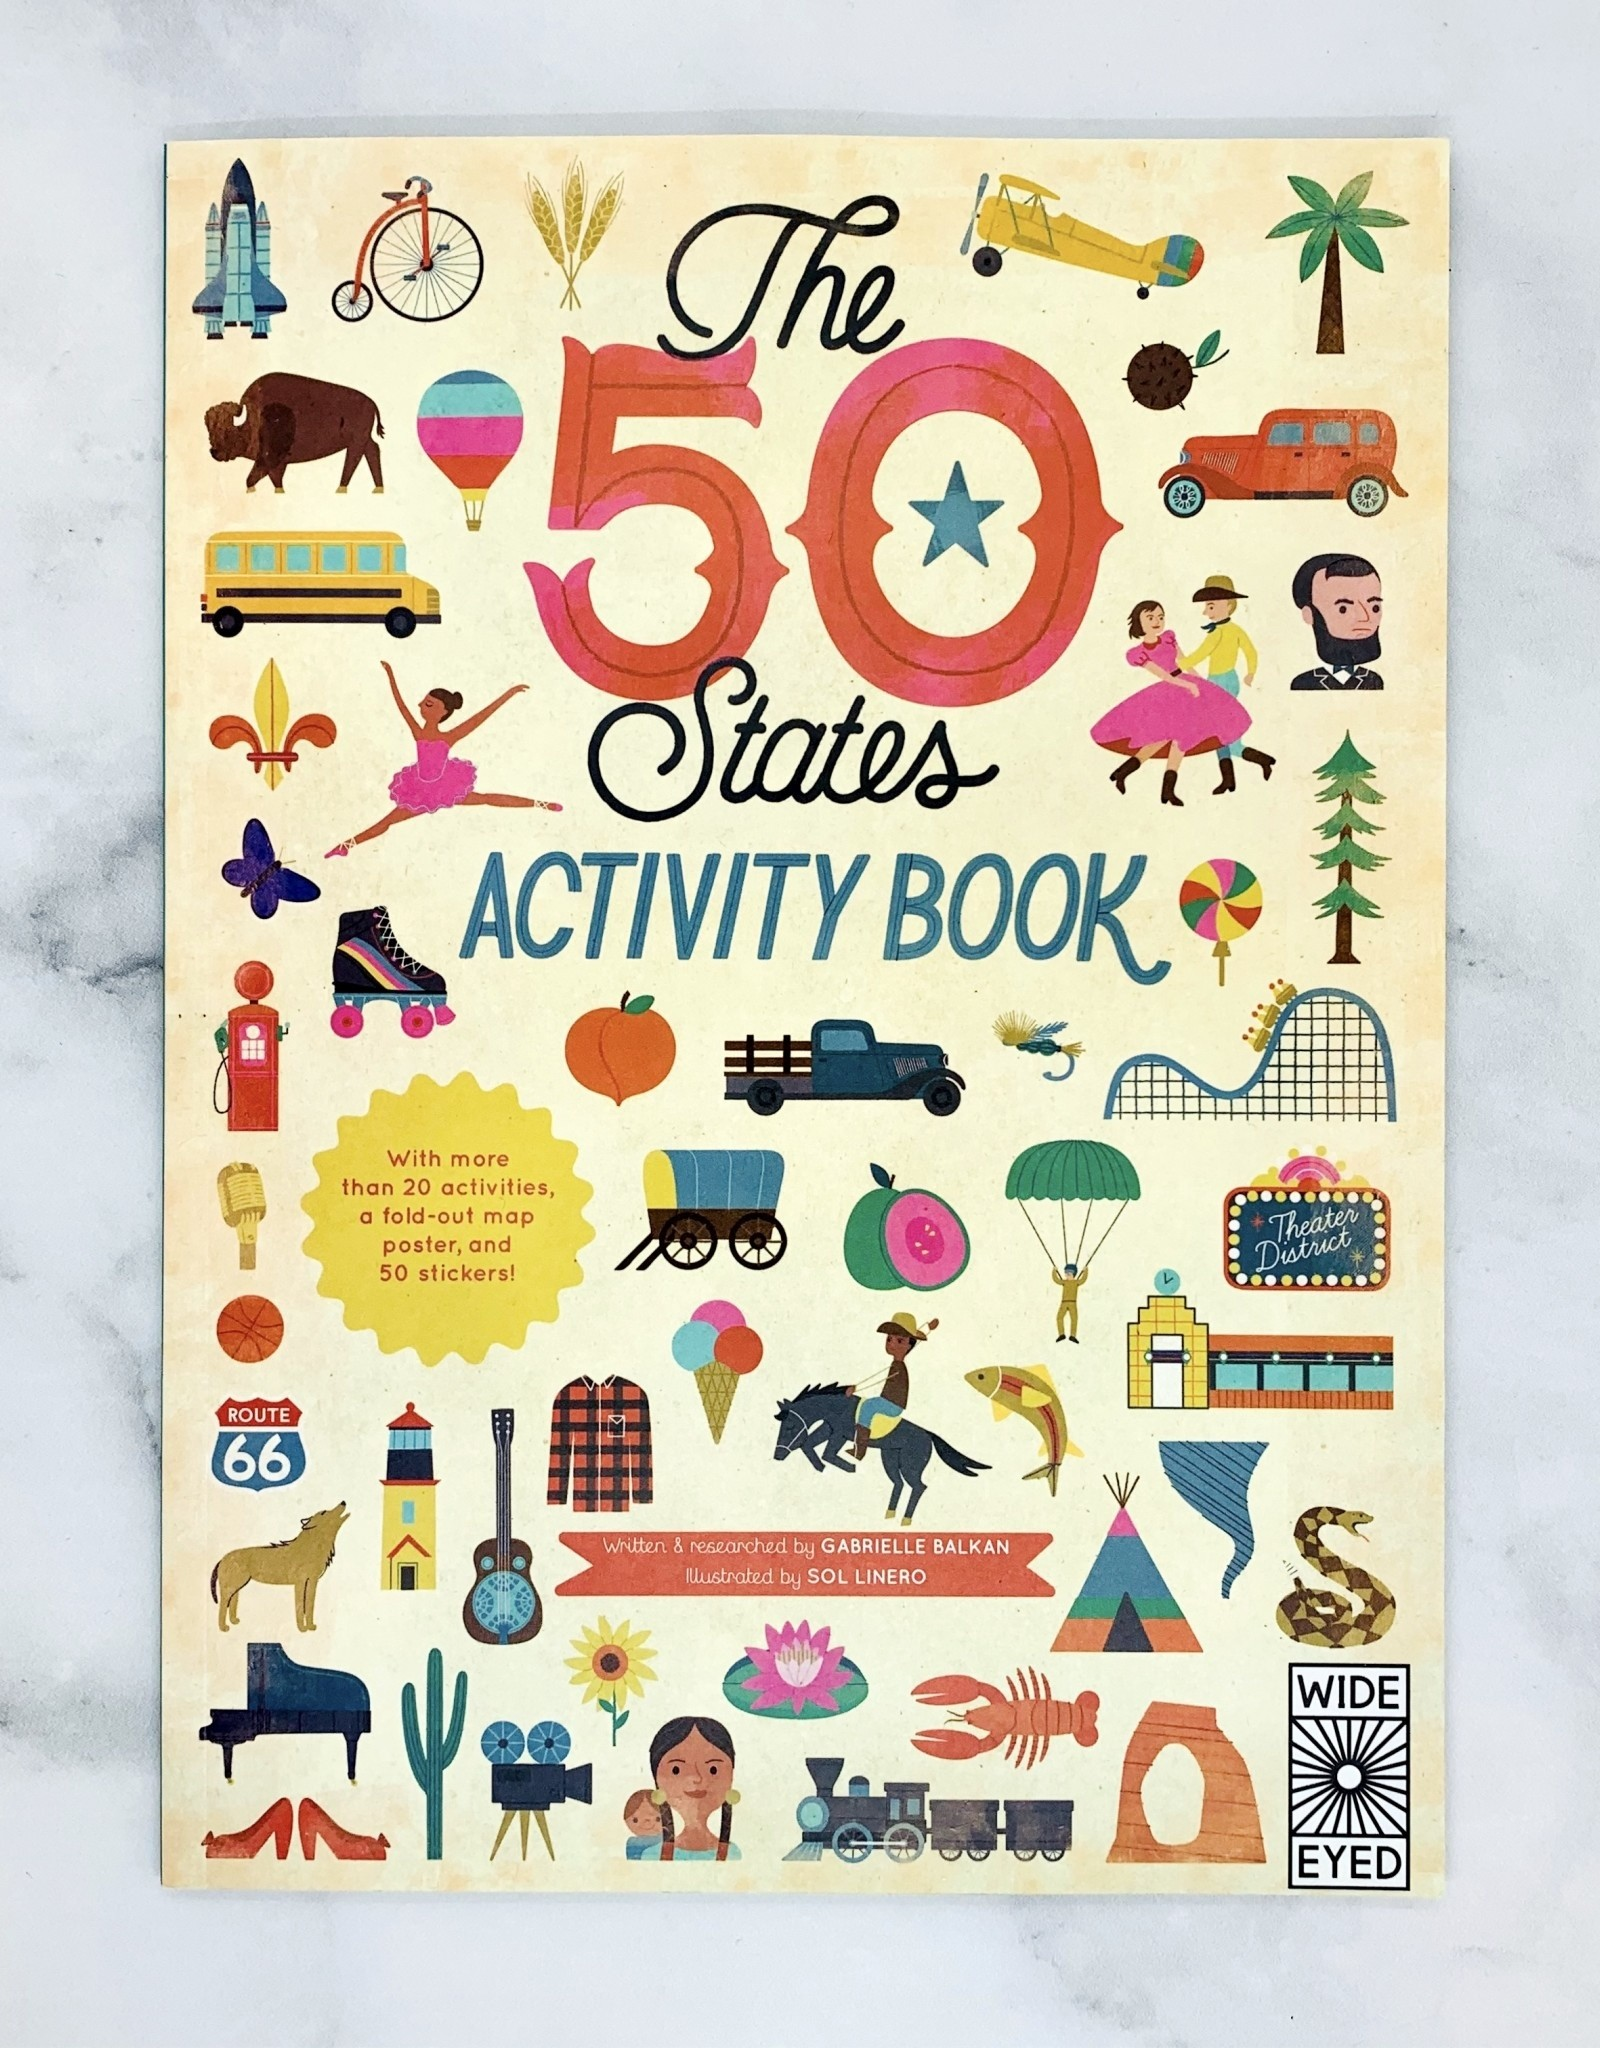 Quarto 50 States: Activity Book